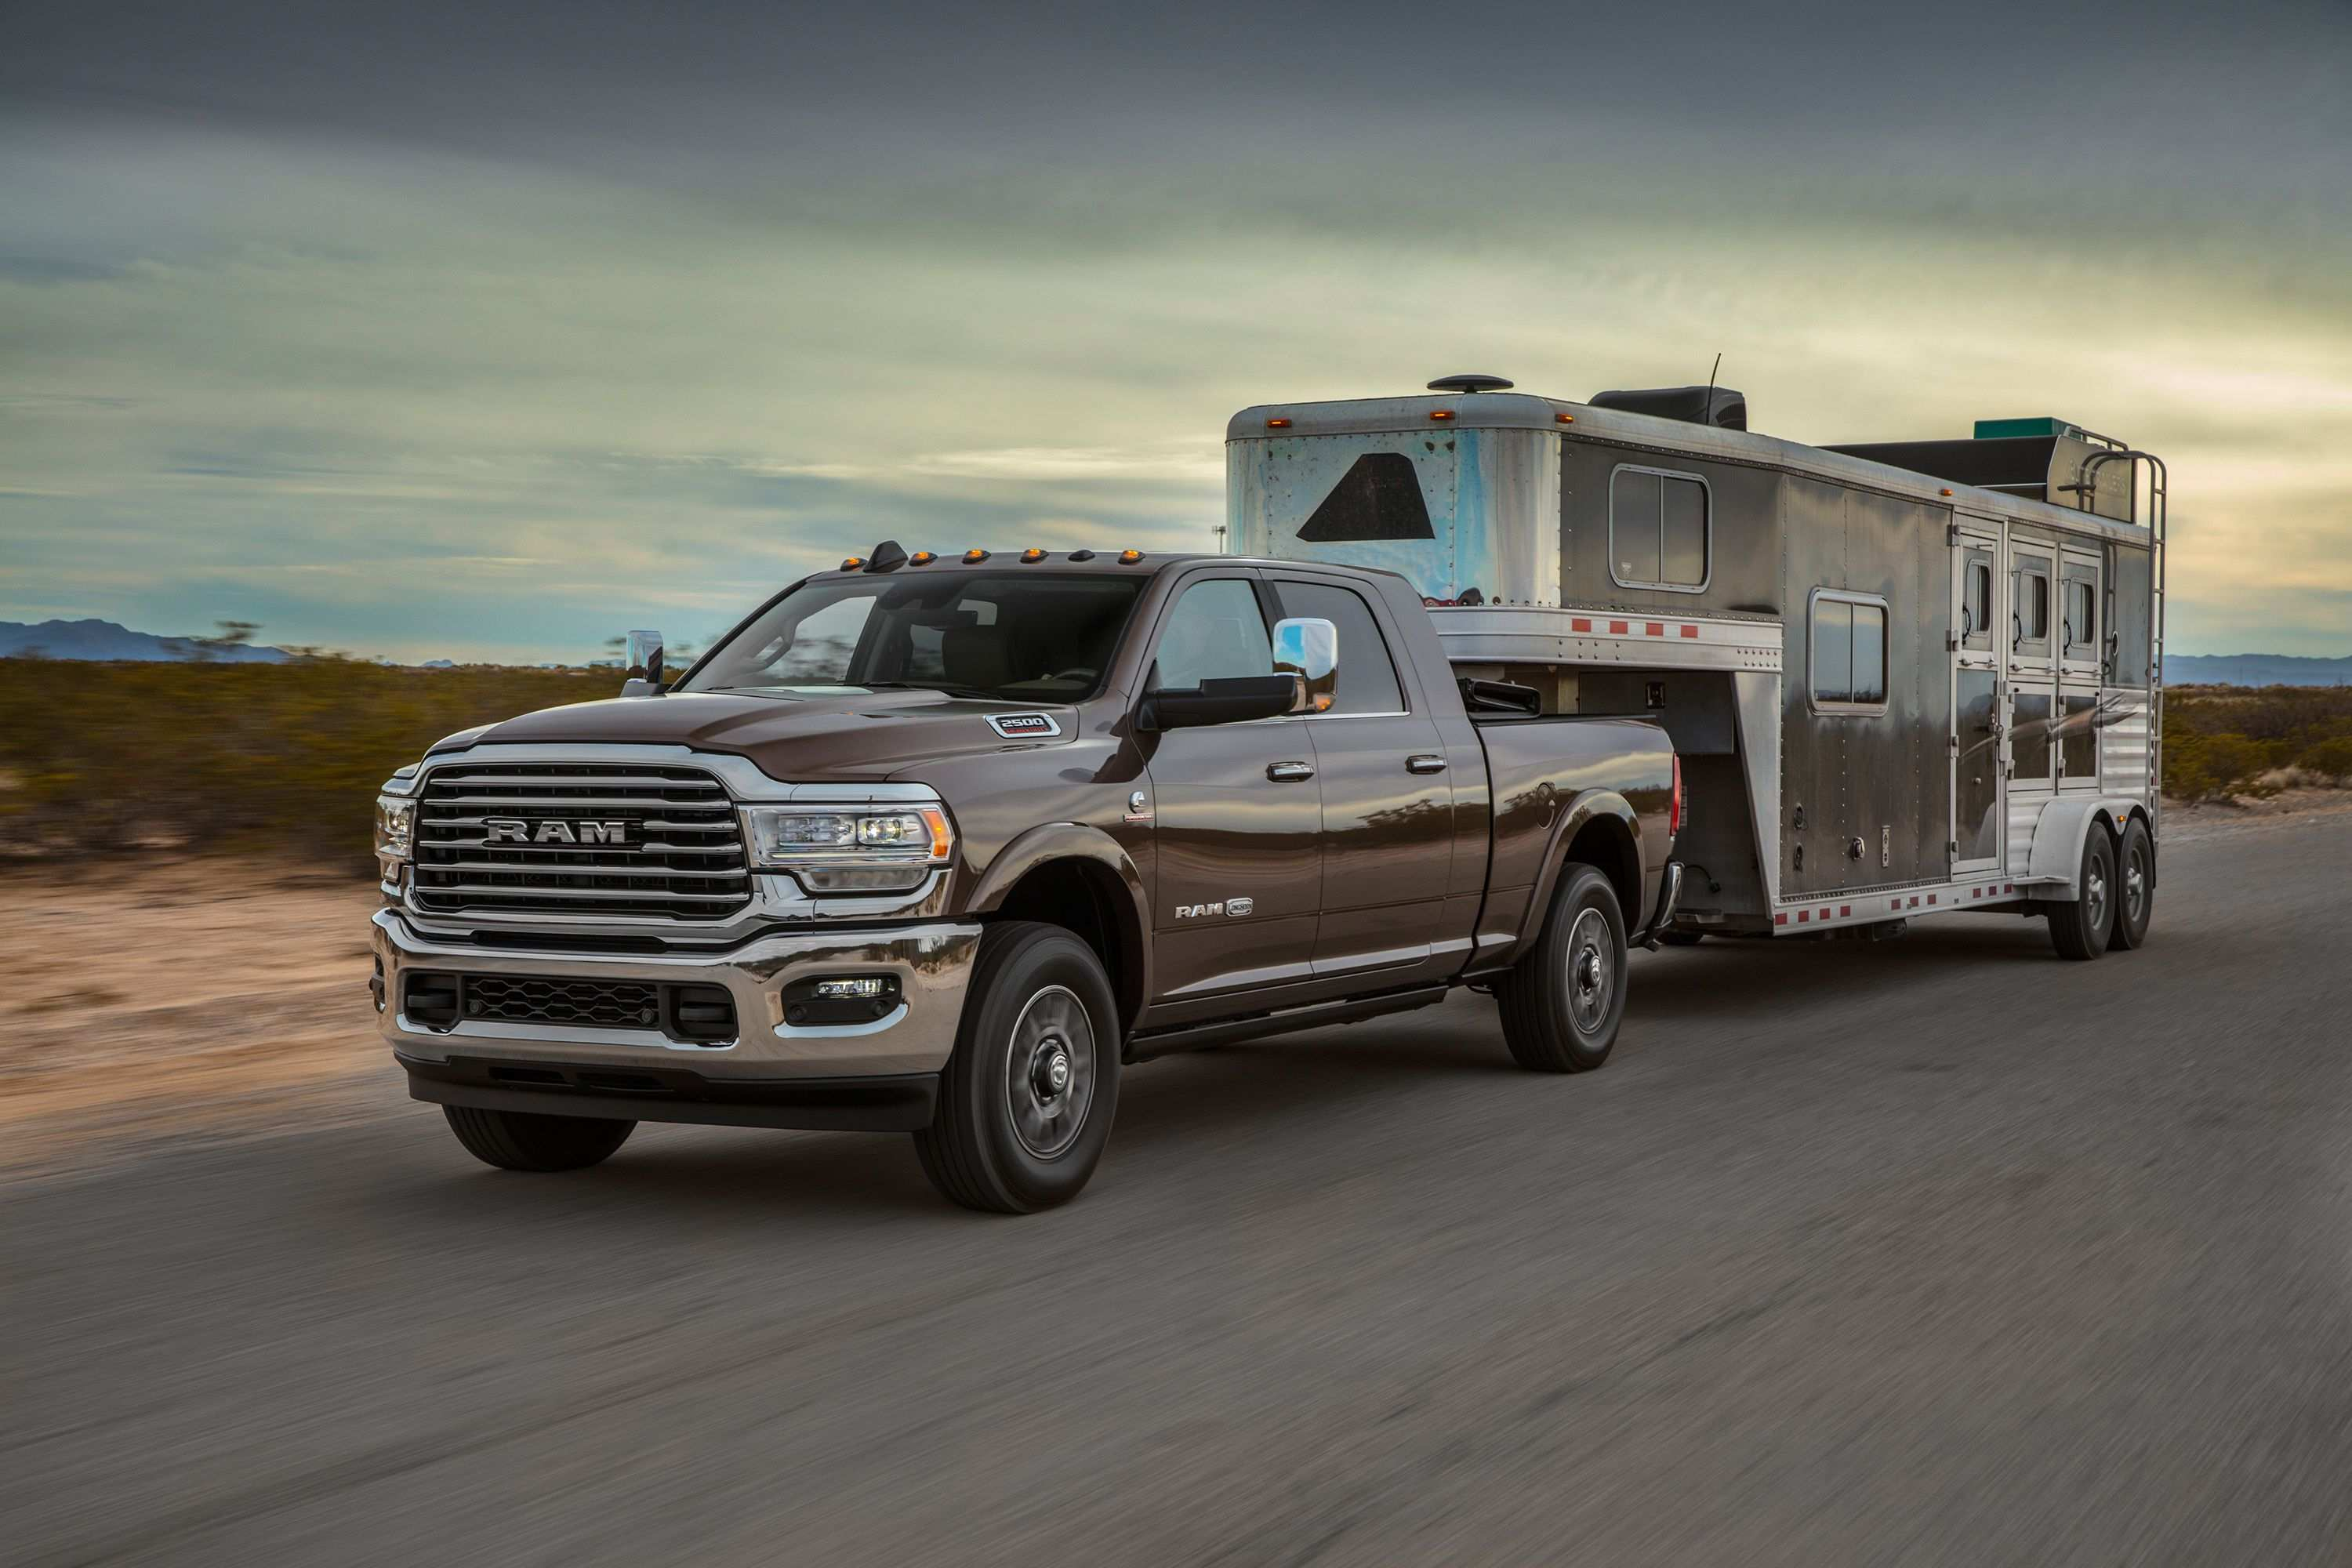 52 The Best 2020 Dodge Ram 2500 Redesign And Review